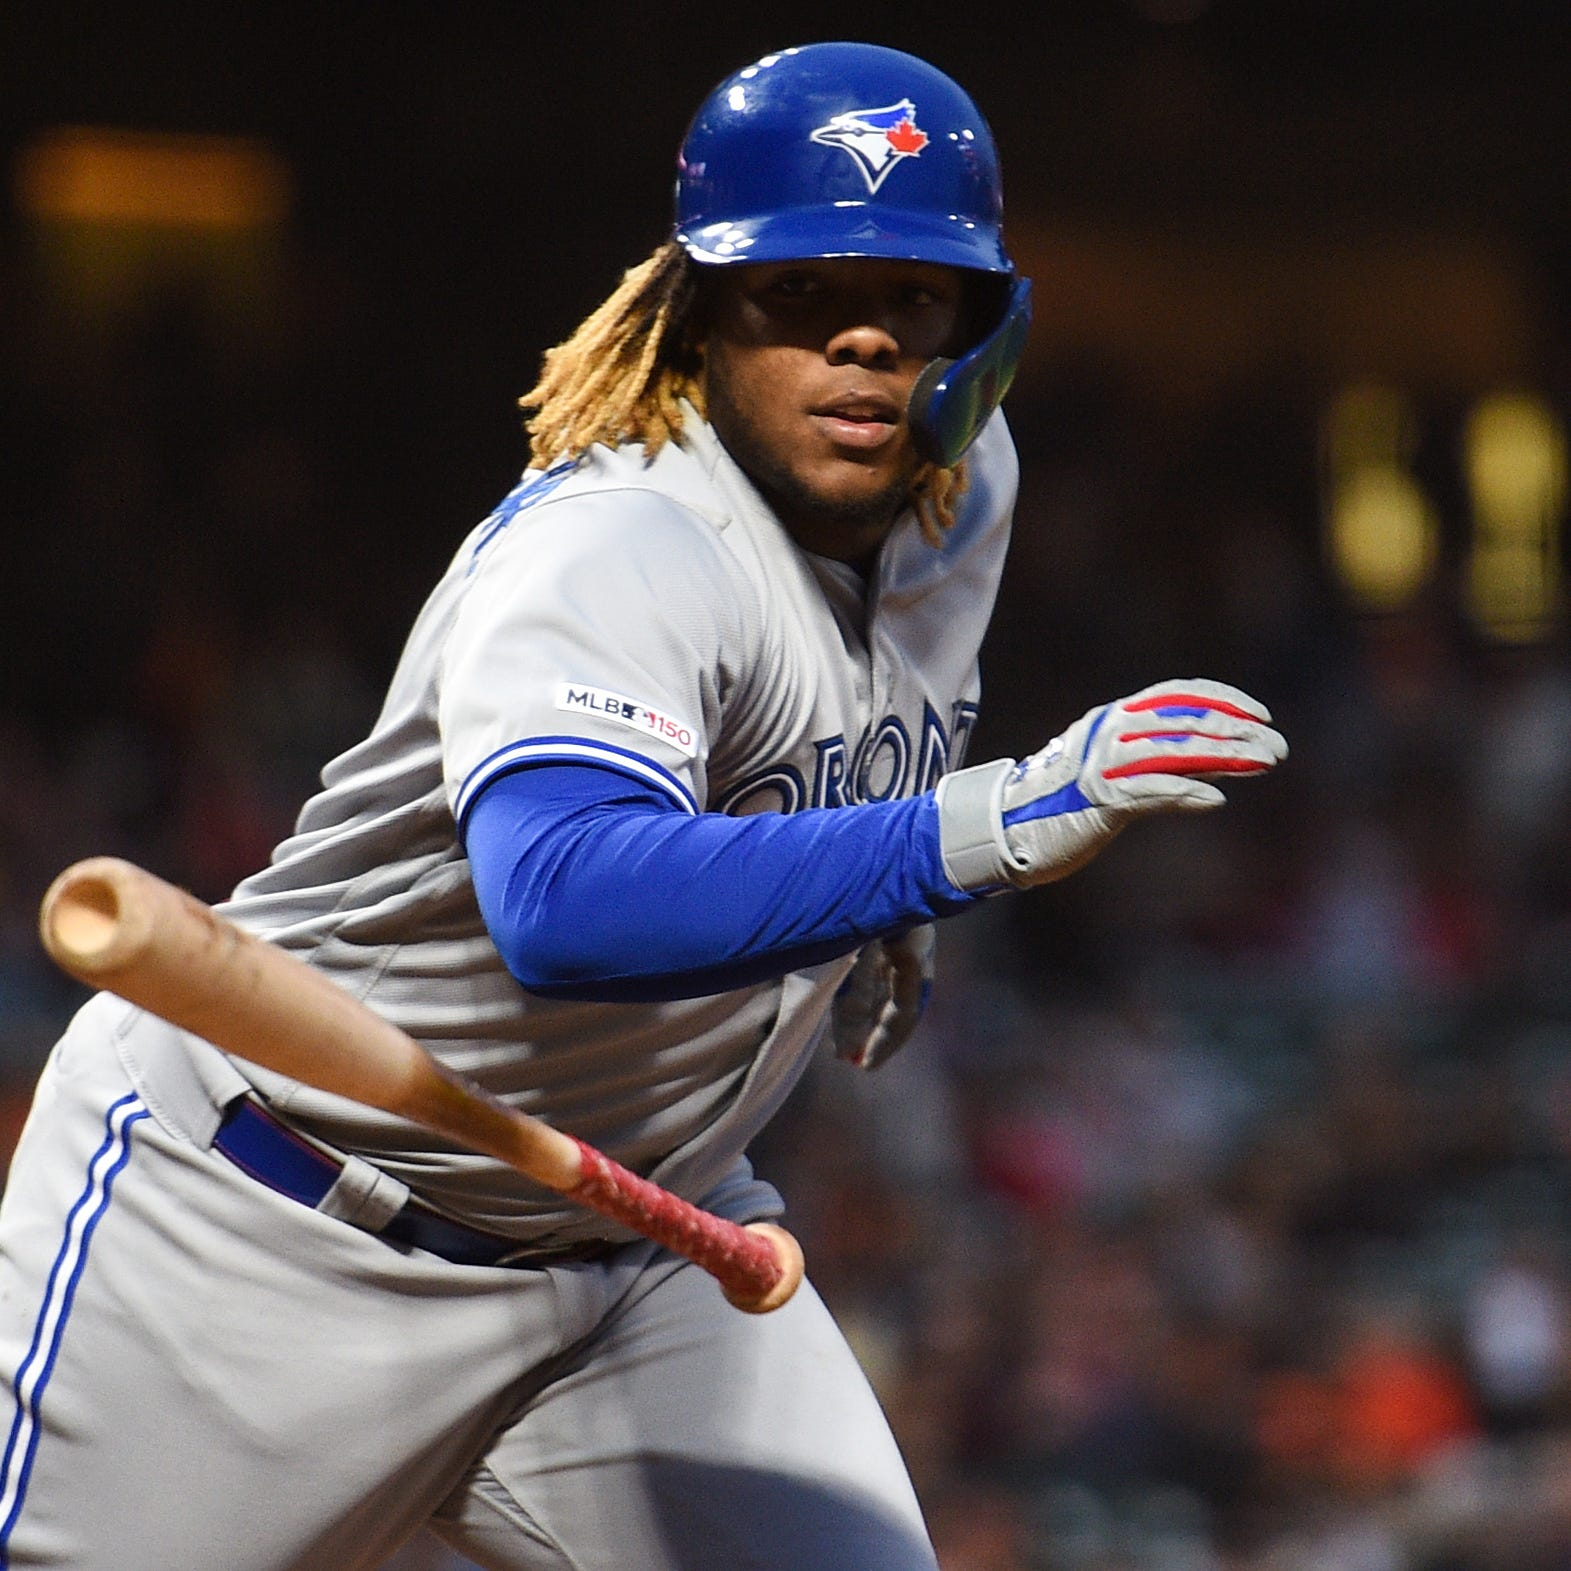 Vladimir Guerrero Jr. tosses his bat after walking against the San Francisco Giants.